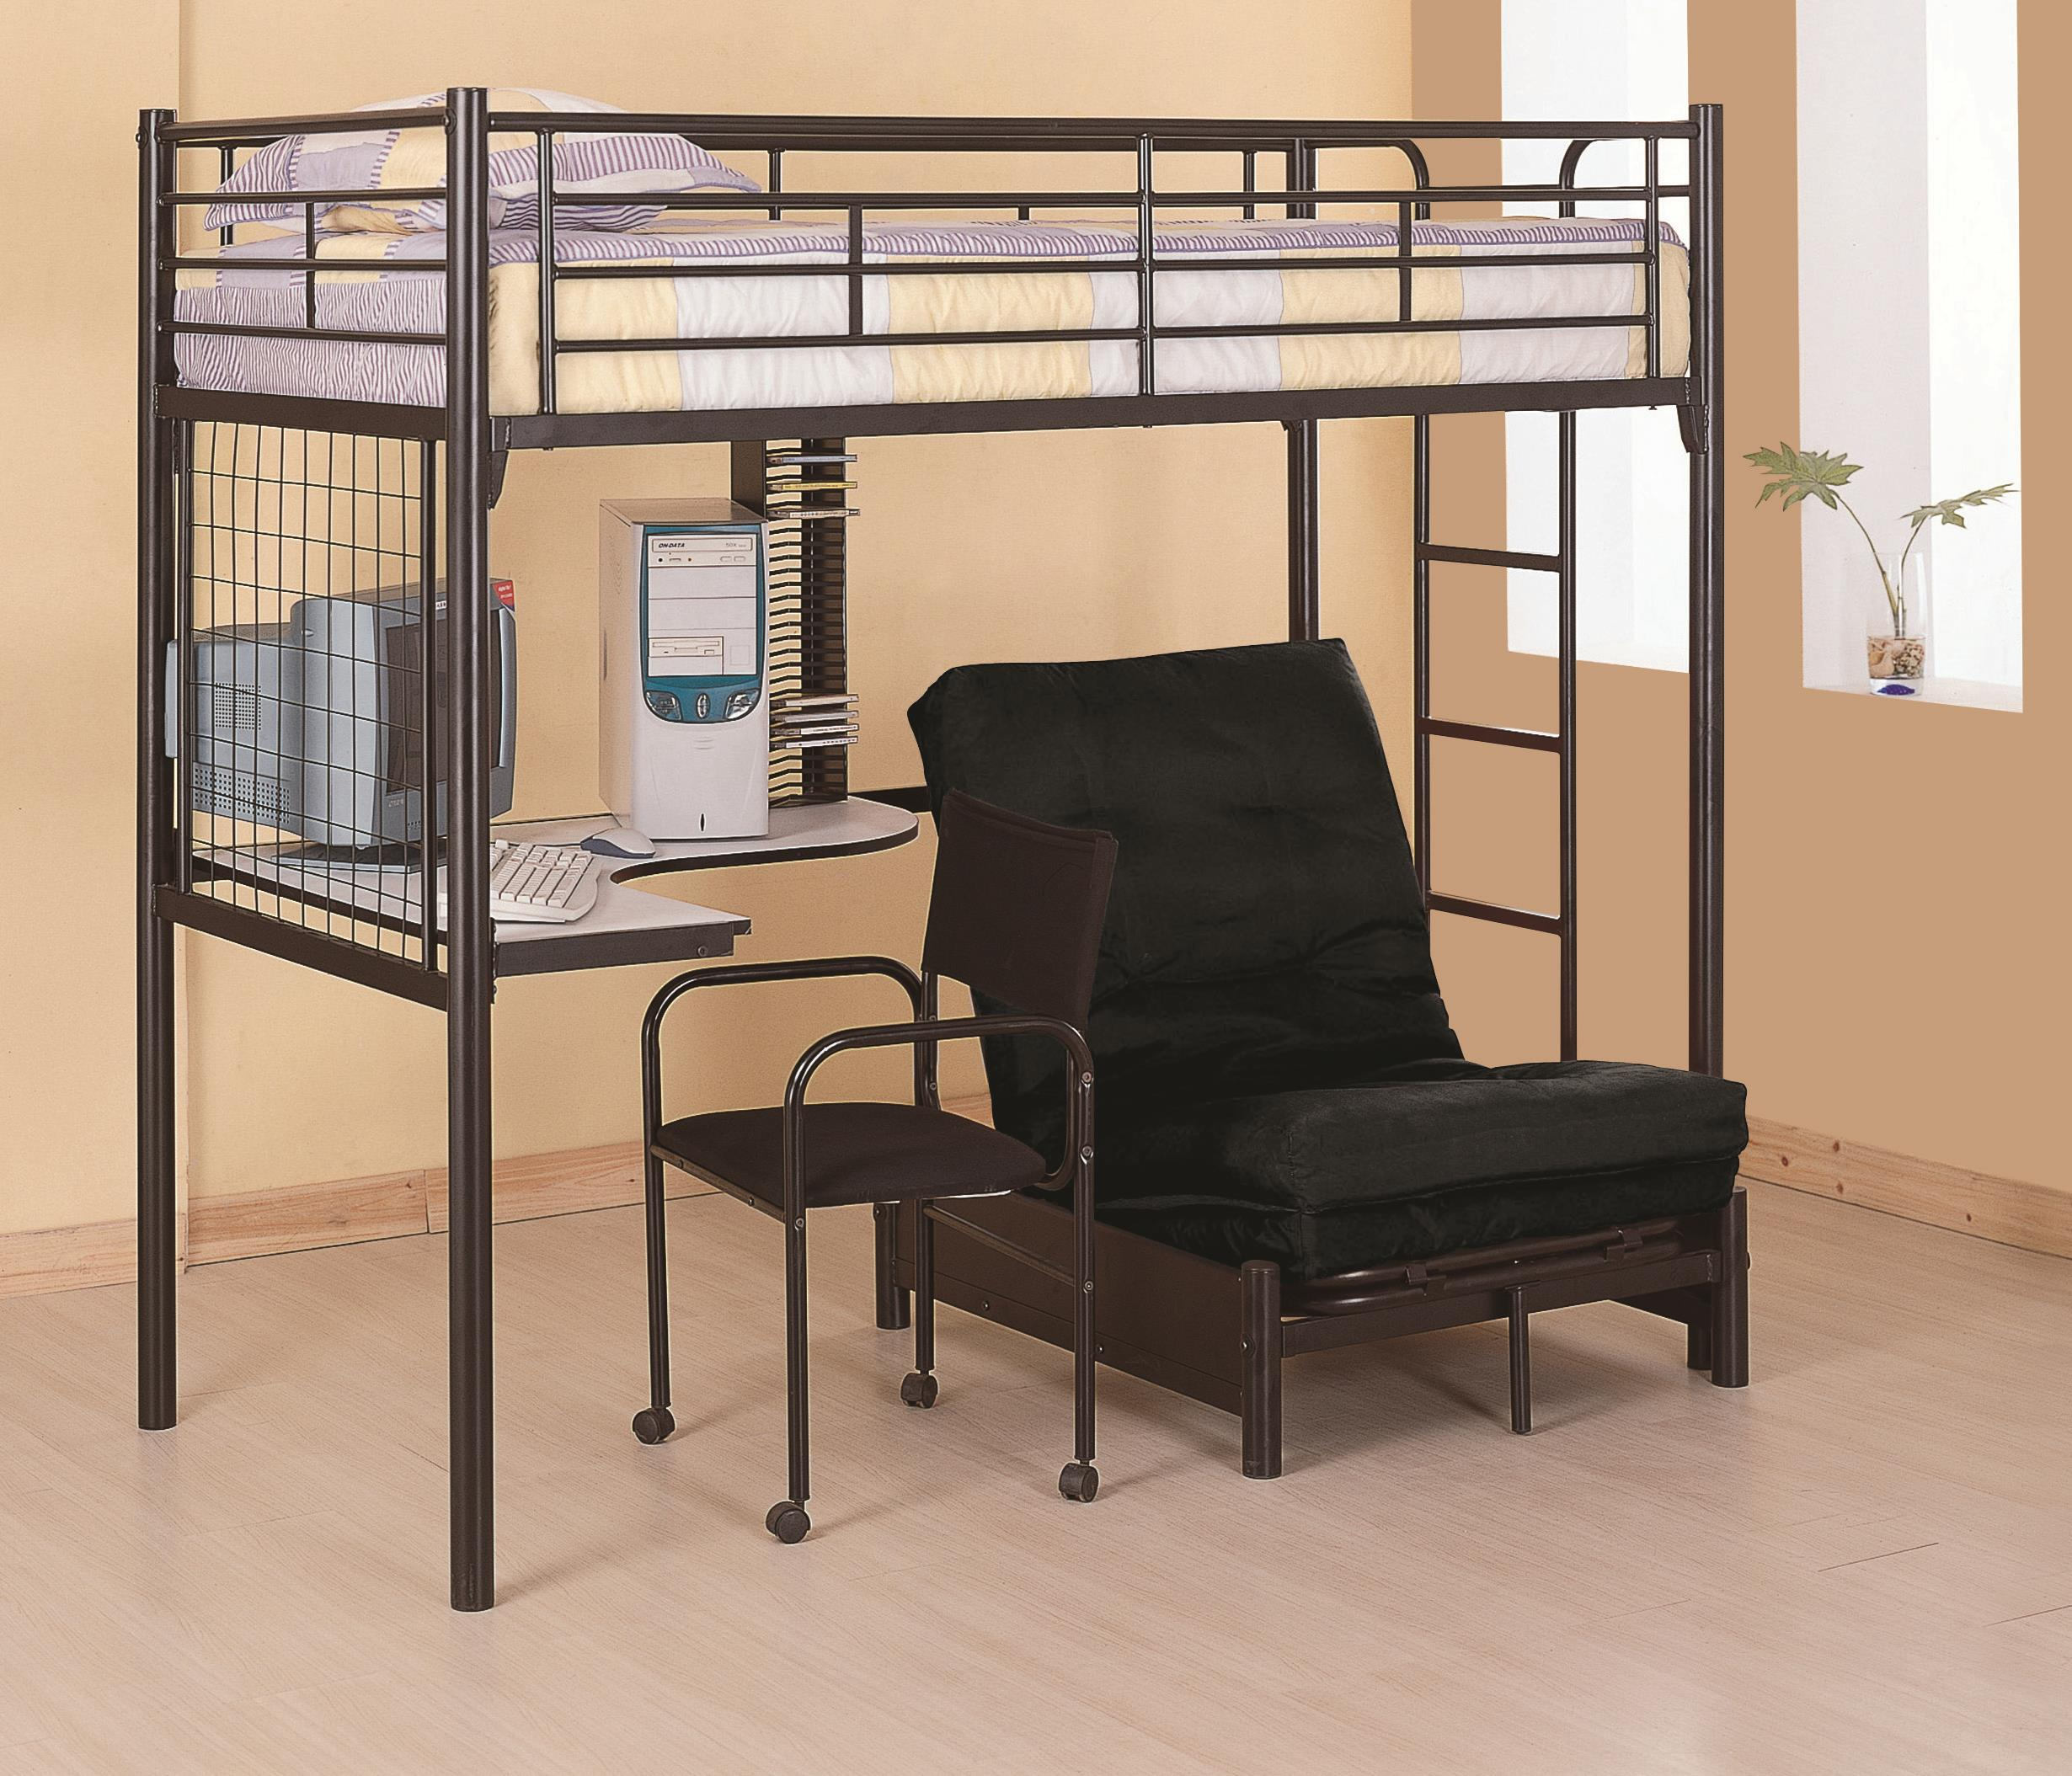 Twin loft bunk bed with futon chair & desk